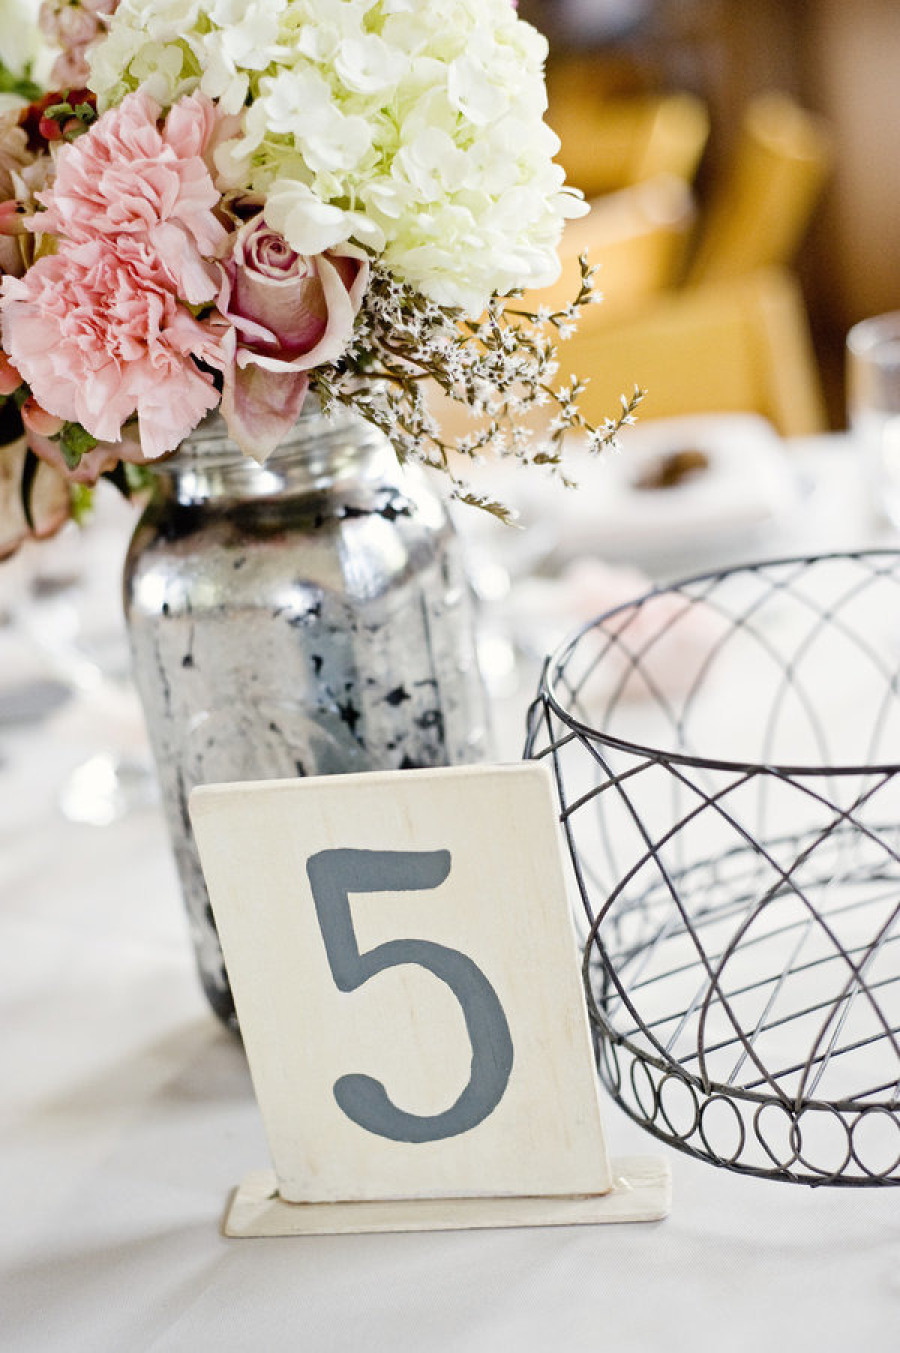 Stylish mercury glass vases that add pizzazz to any dcor accessorize the vases with pastel colored flowers and other matching details reviewsmspy